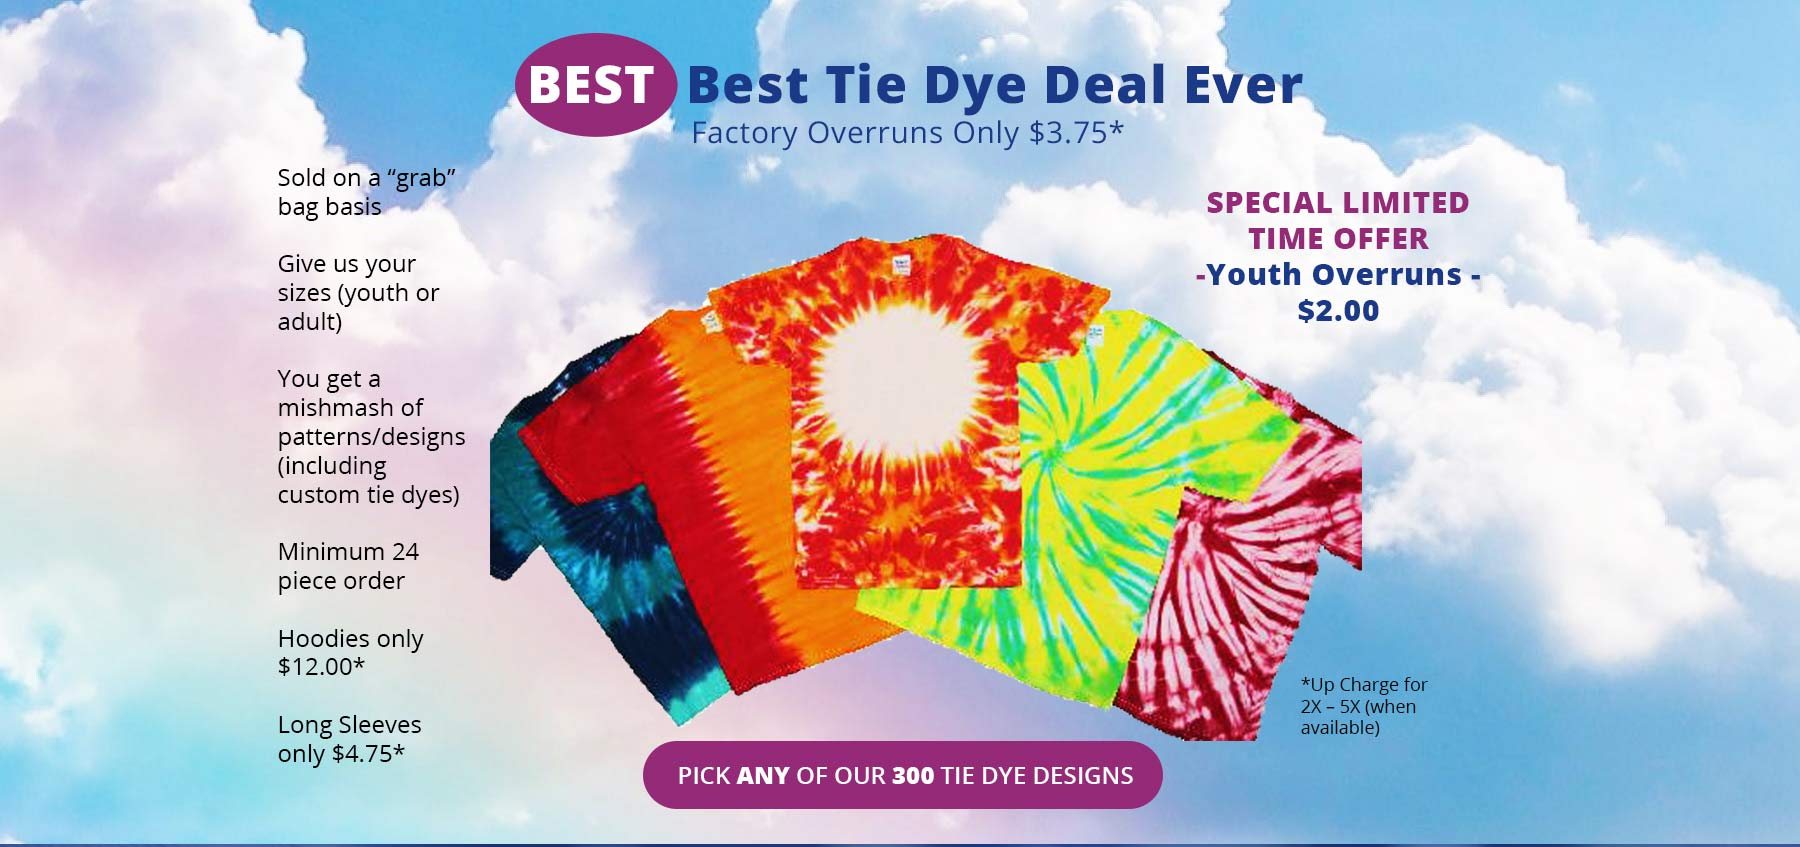 Kerrs Cotton - Best Tie Dye Deal Ever